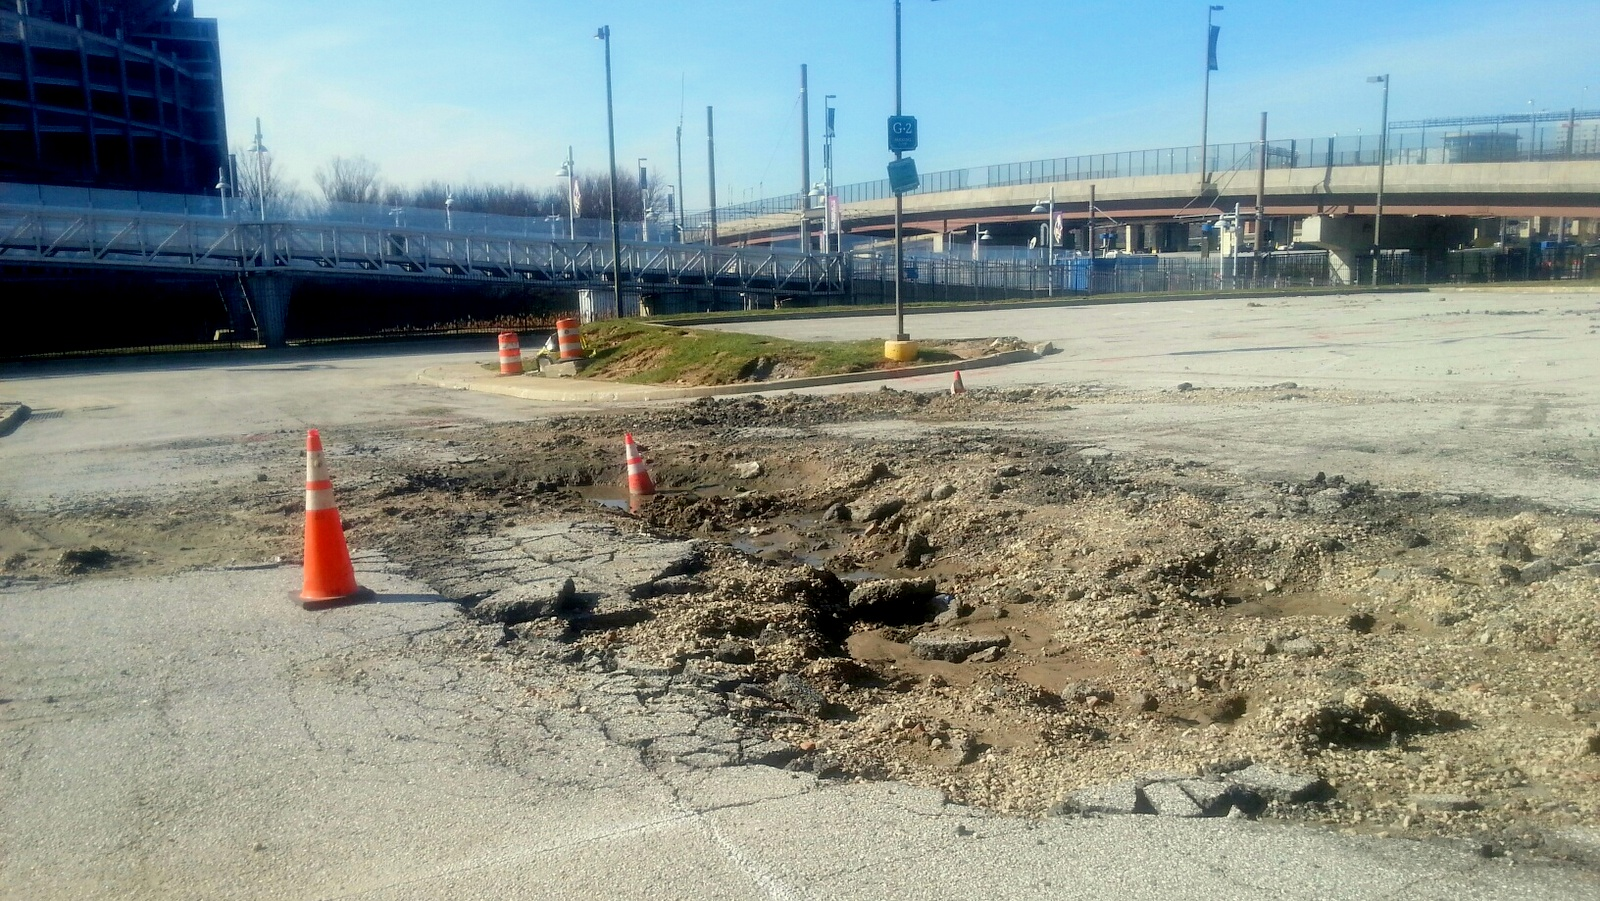 Craters left behind at the stadium after snow from Baltimore's record-setting January snowfall was dumped there. (Photo by Ed Gunts.)